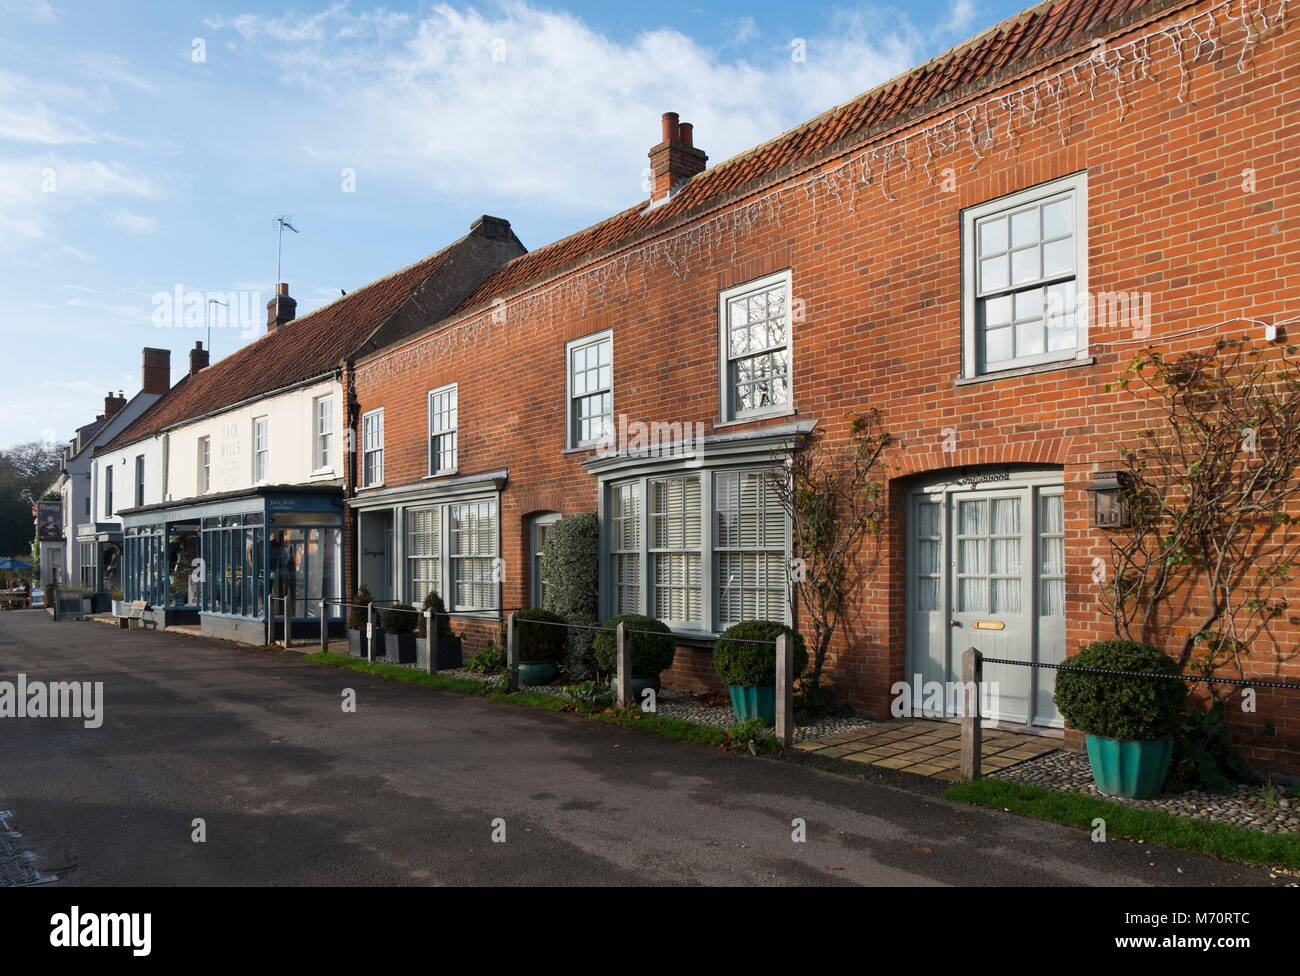 Jack Wills, contemporary clothing shop next door to a residential house in Burnham Market, North Norfolk, UK - Stock Image